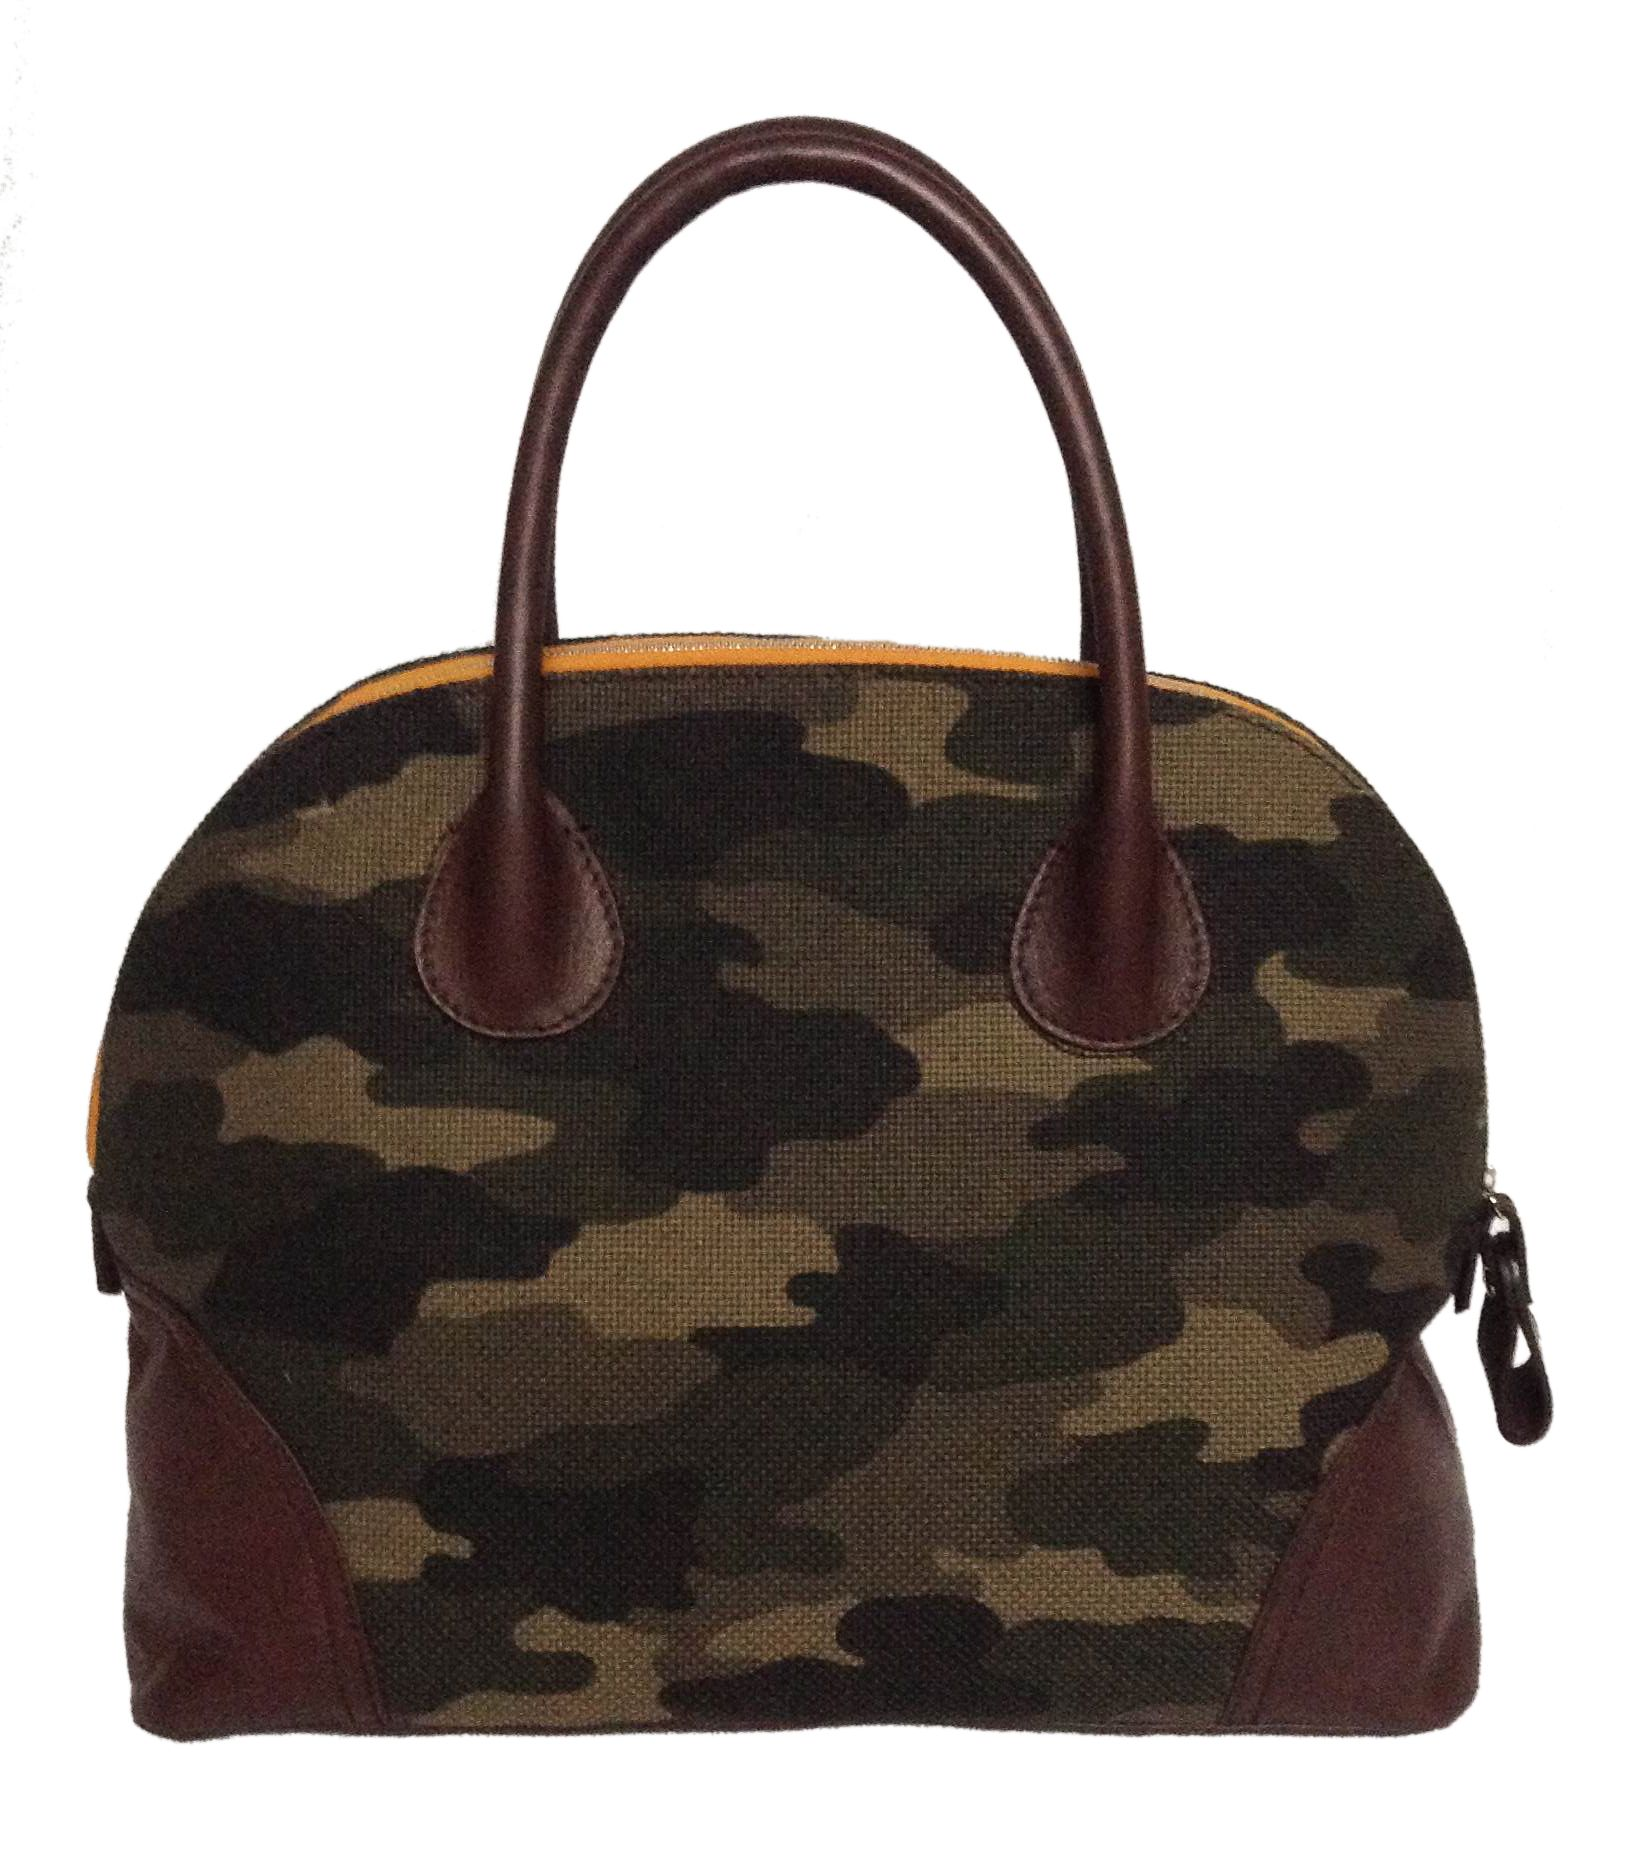 Hip Milano style with camouflage and brown leather